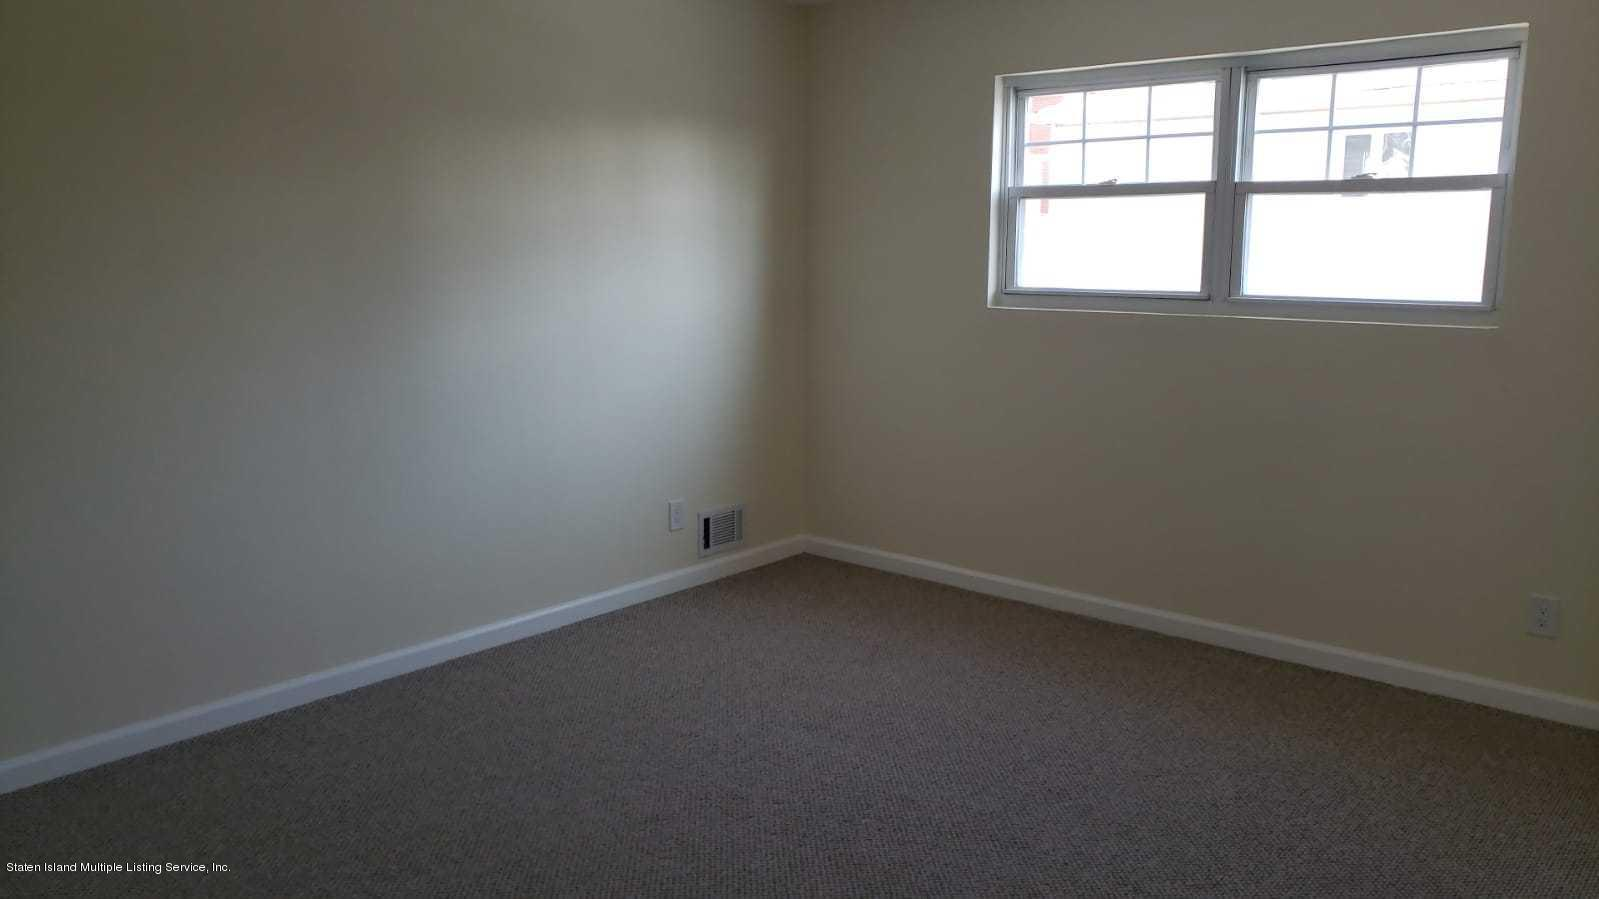 Single Family - Semi-Attached 505 Foster Road  Staten Island, NY 10309, MLS-1124398-9